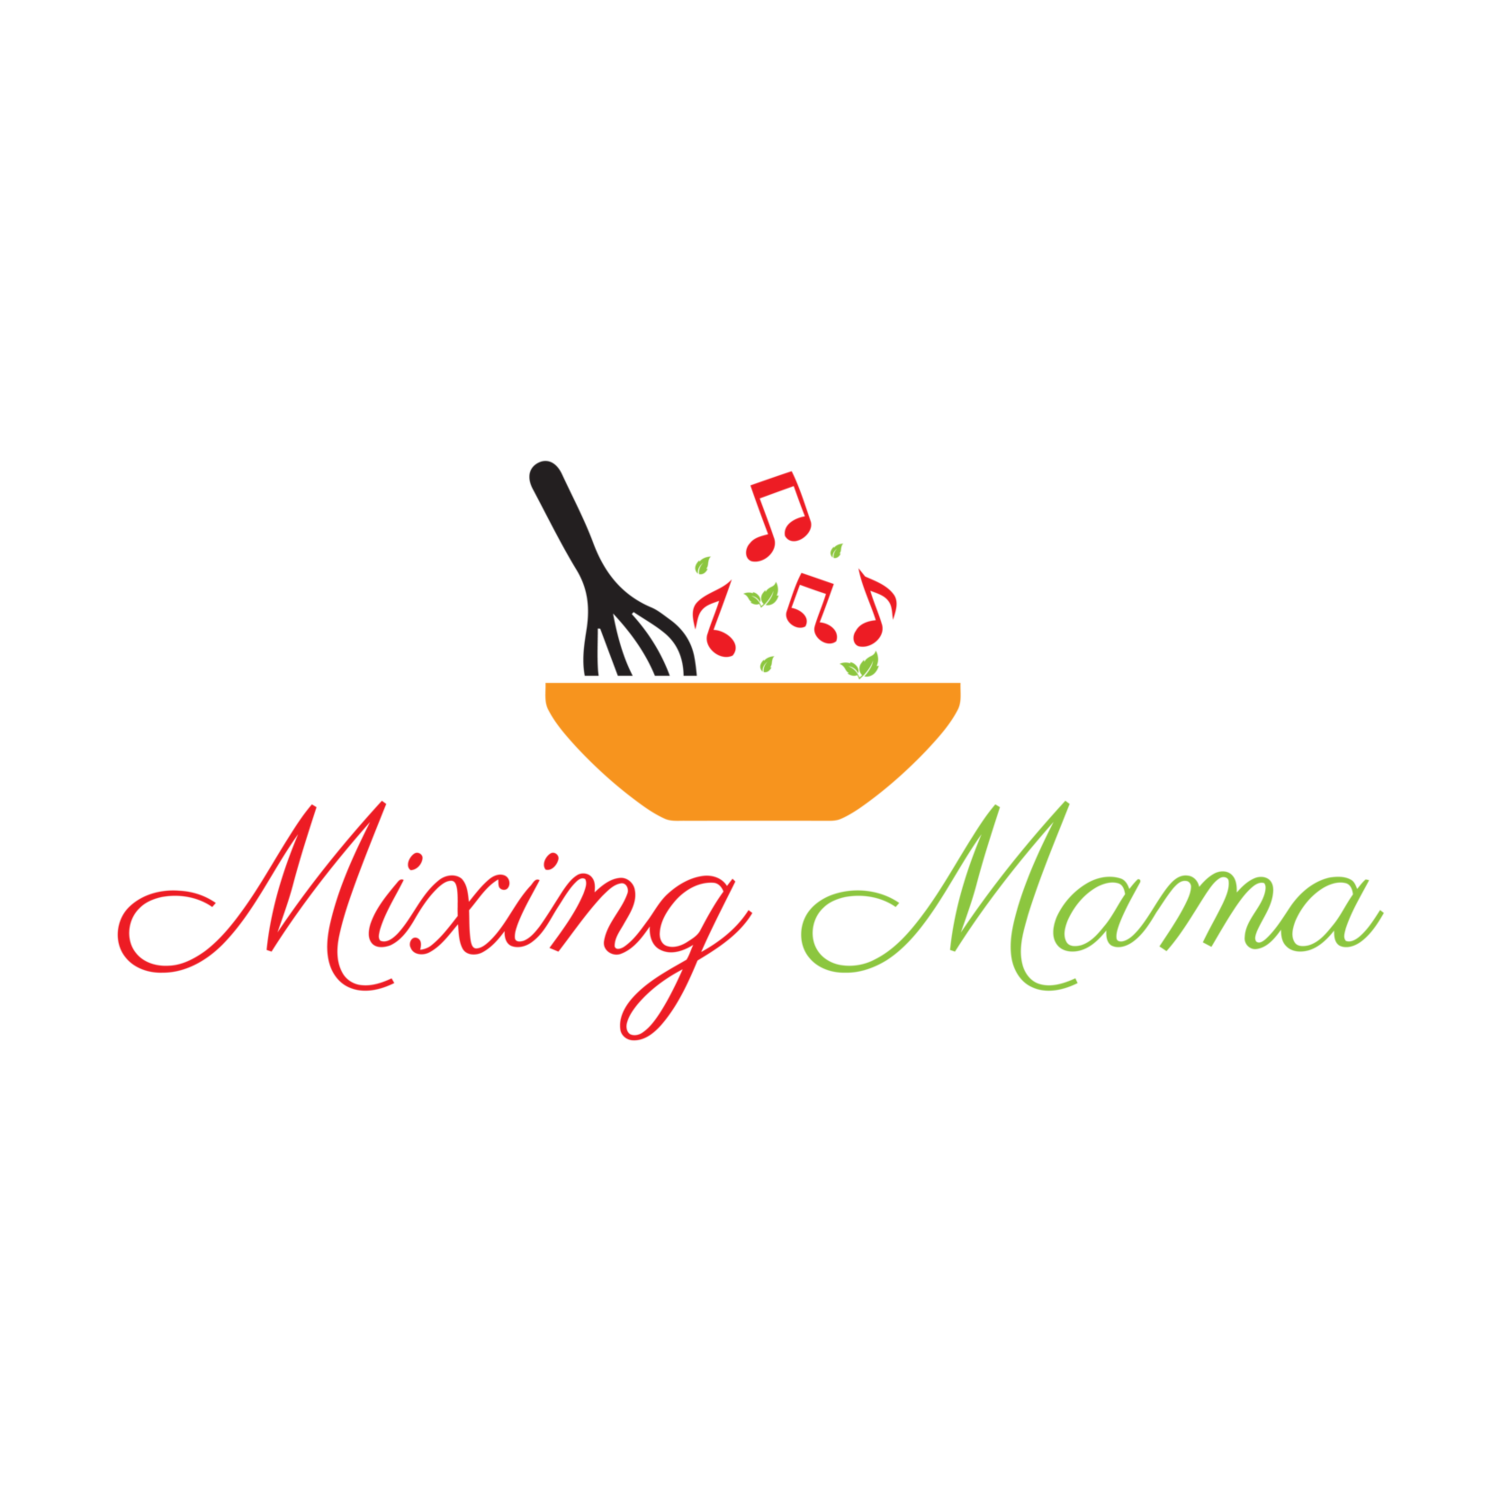 Dinner clipart home cooked meal. Services mixing mama cart